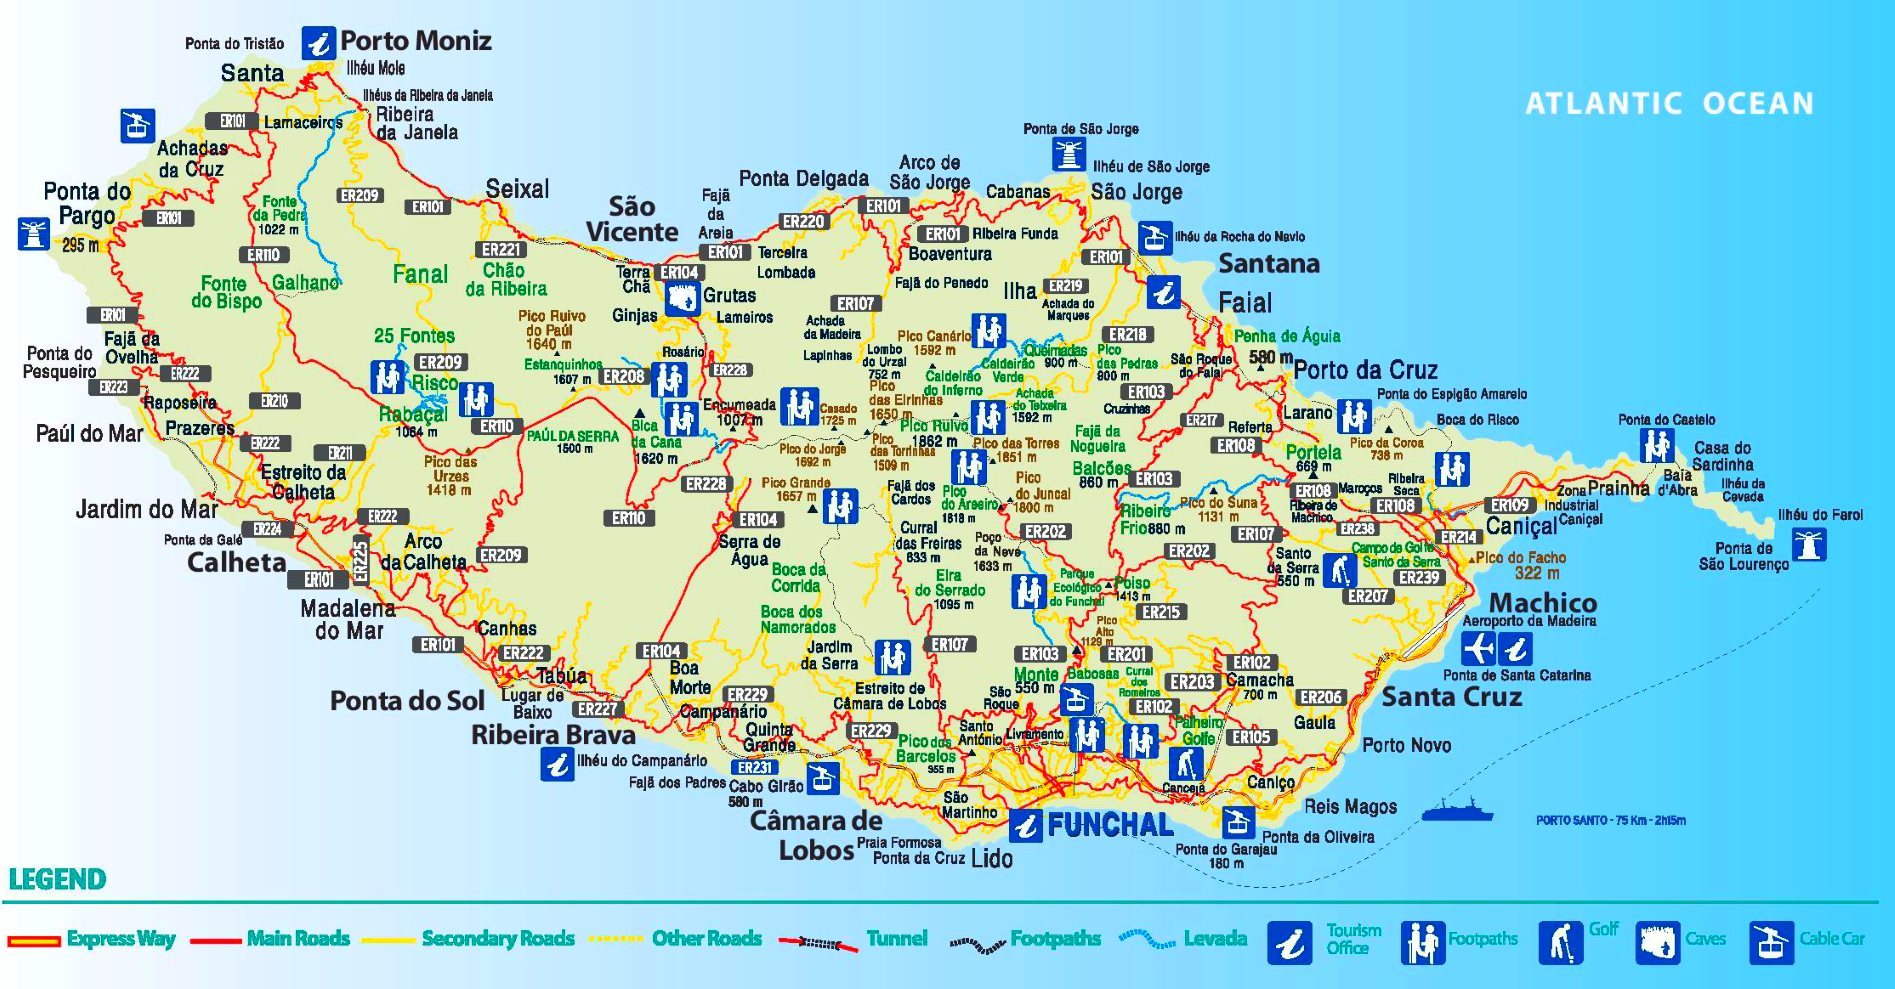 Madeira tourist map on bermuda map, jamaica map, lisbon map, casiquiare canal map, mauritius map, vila franca do campo map, australia map, mayotte map, uzbekistan map, bussaco map, broadview heights map, taiwan map, portugal map, rheinhessen map, algarve region map, mt lookout map, lake titicaca map, west indies map, slovenia map, canary islands map,